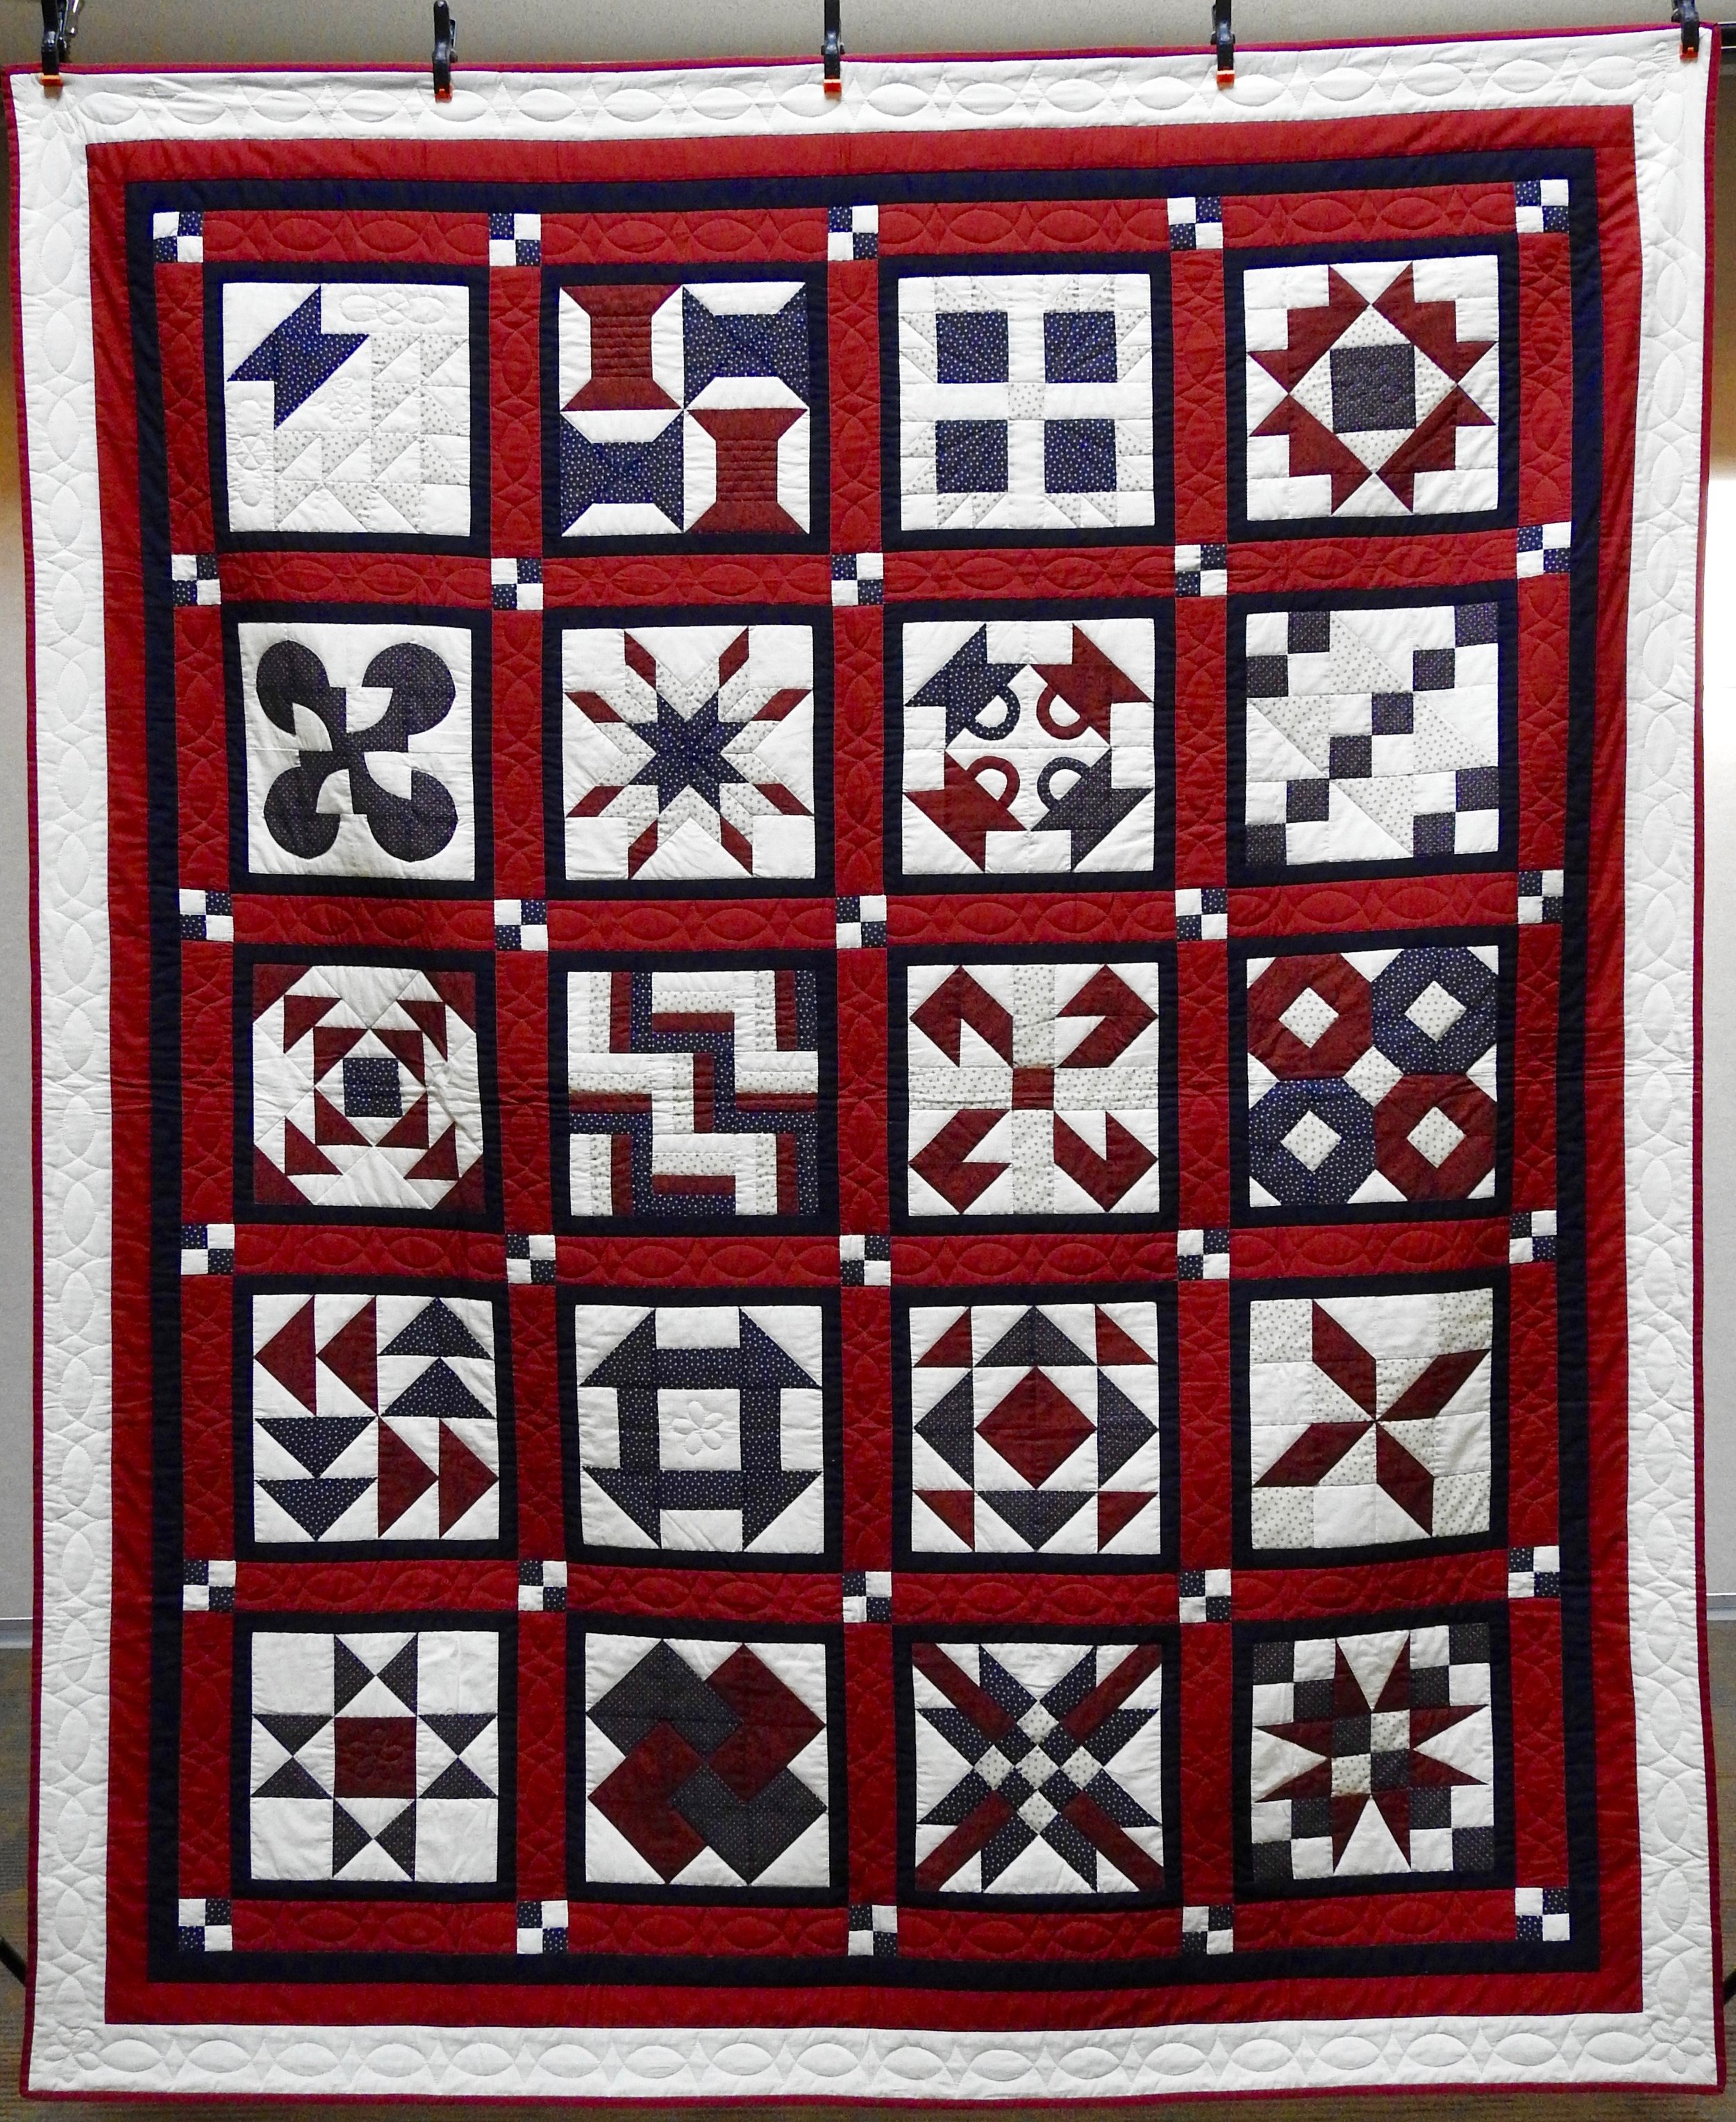 Red, White & Blue Sampler, Pieced & Hand Quilted by Isabel Leipprandt, Signed & Dated, donated by Wayne & Karen Moss, 73 x 98""